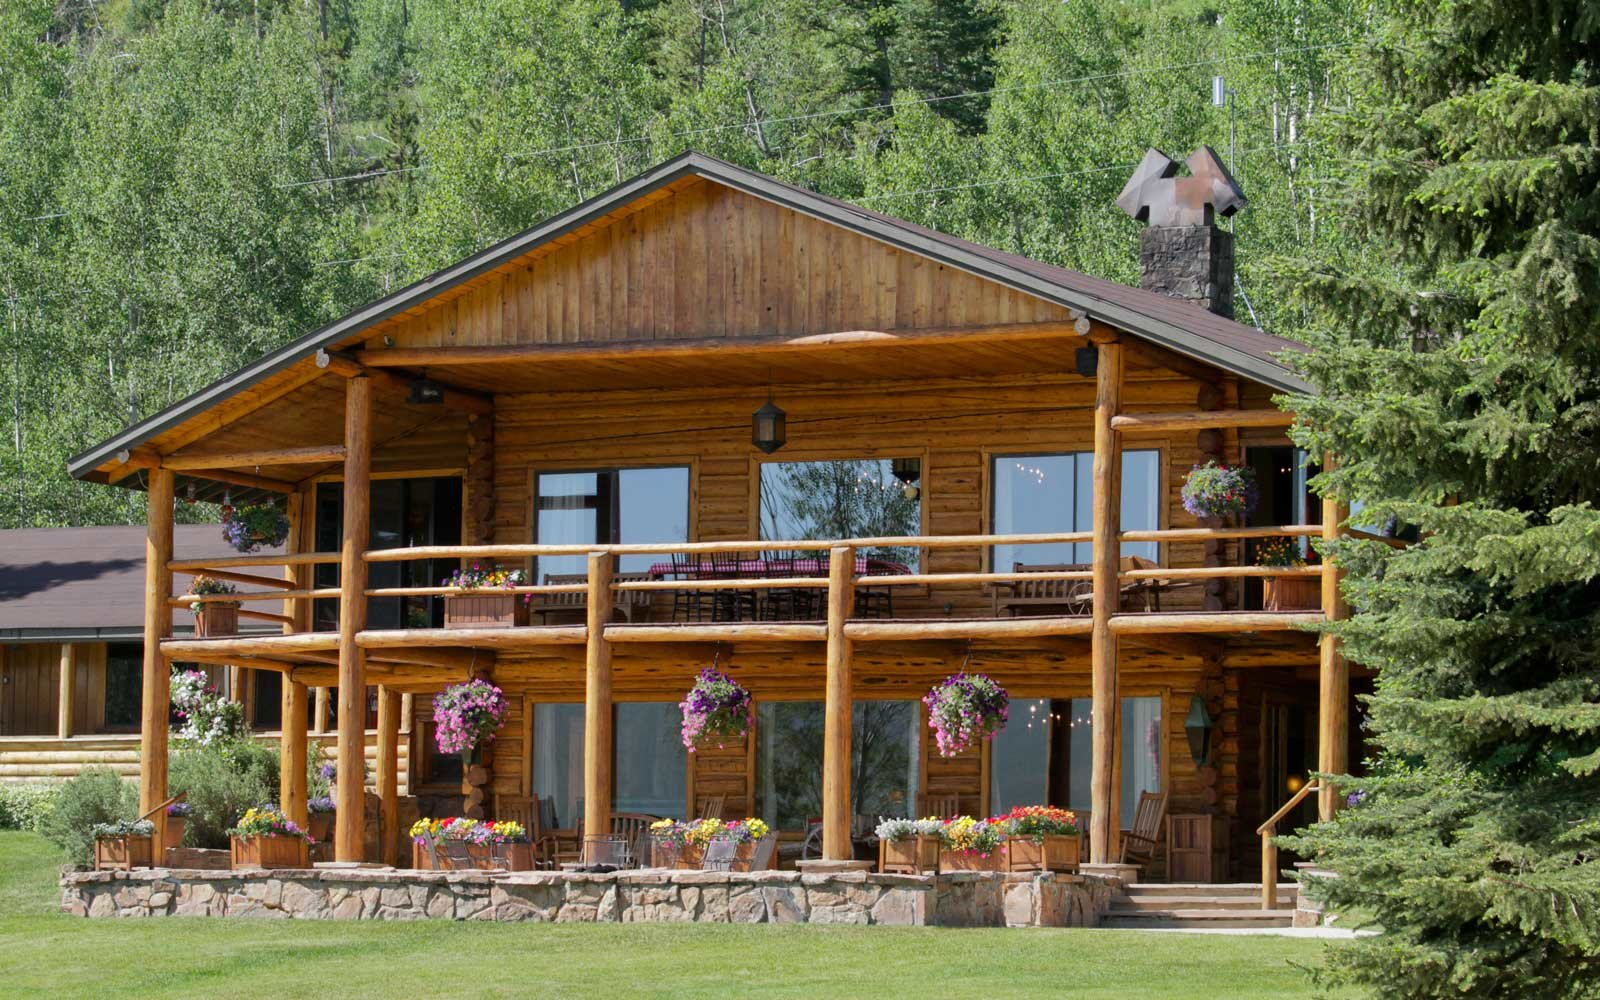 C Lazy U guest ranch cabin